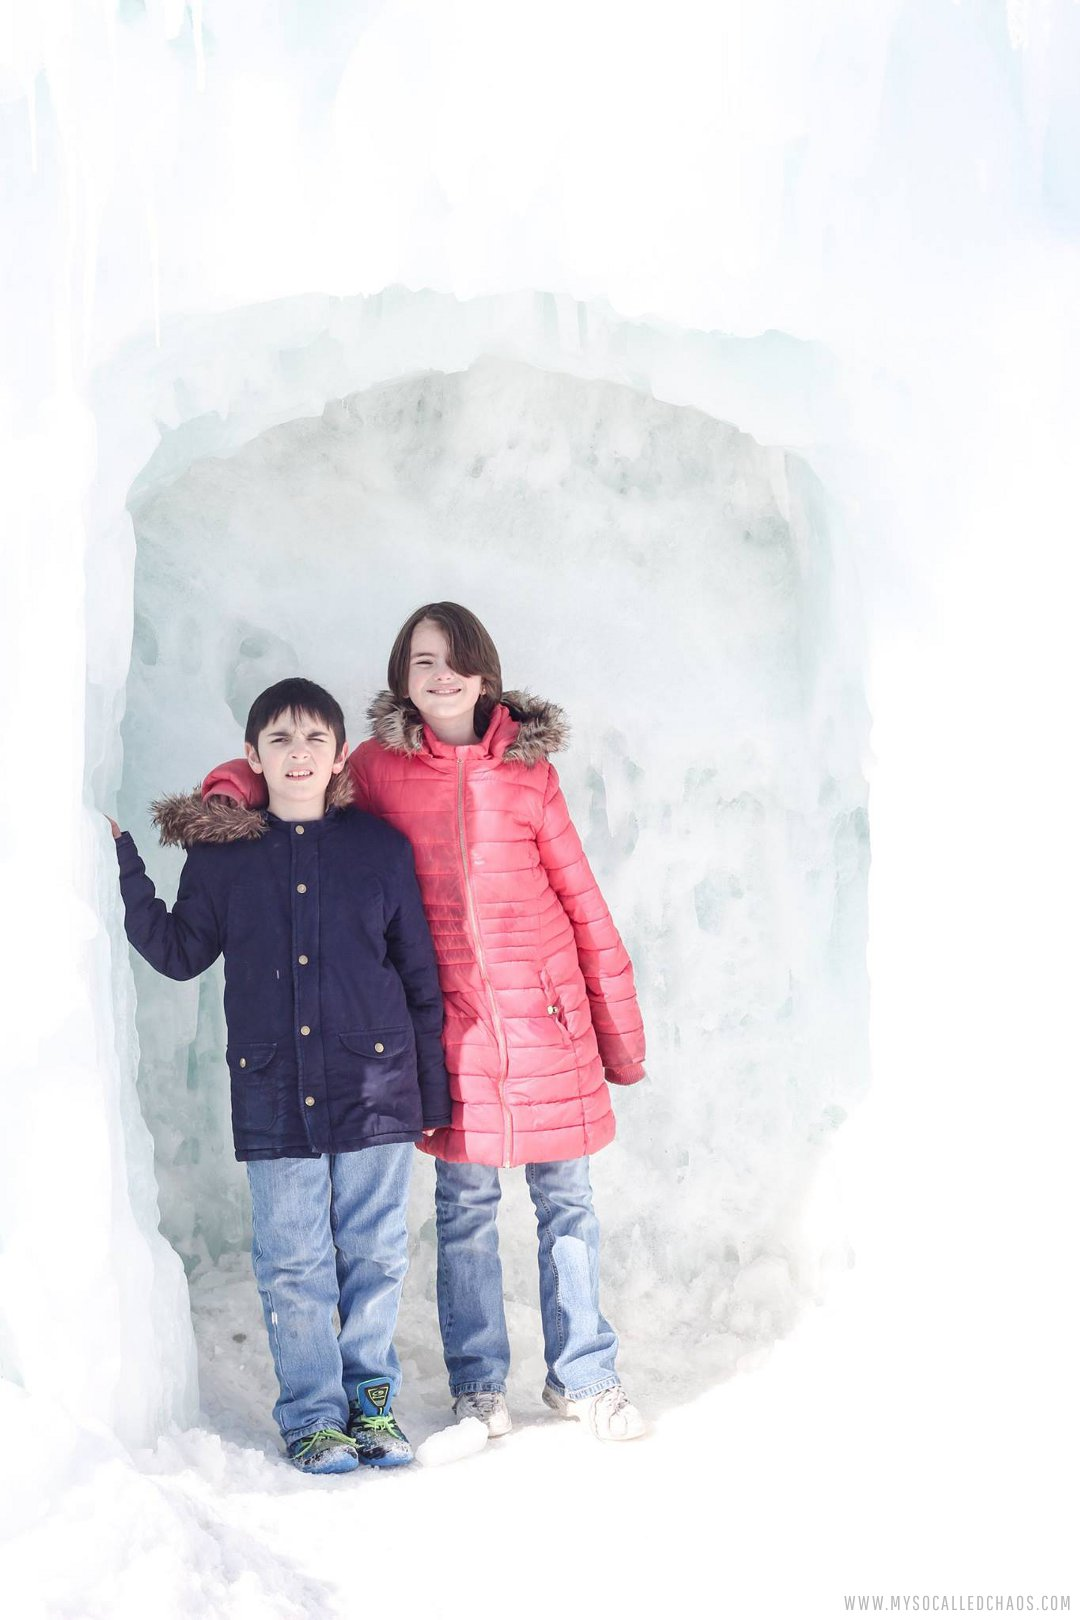 Kaden and Kailee at the Ice Castles in Midway, Utah